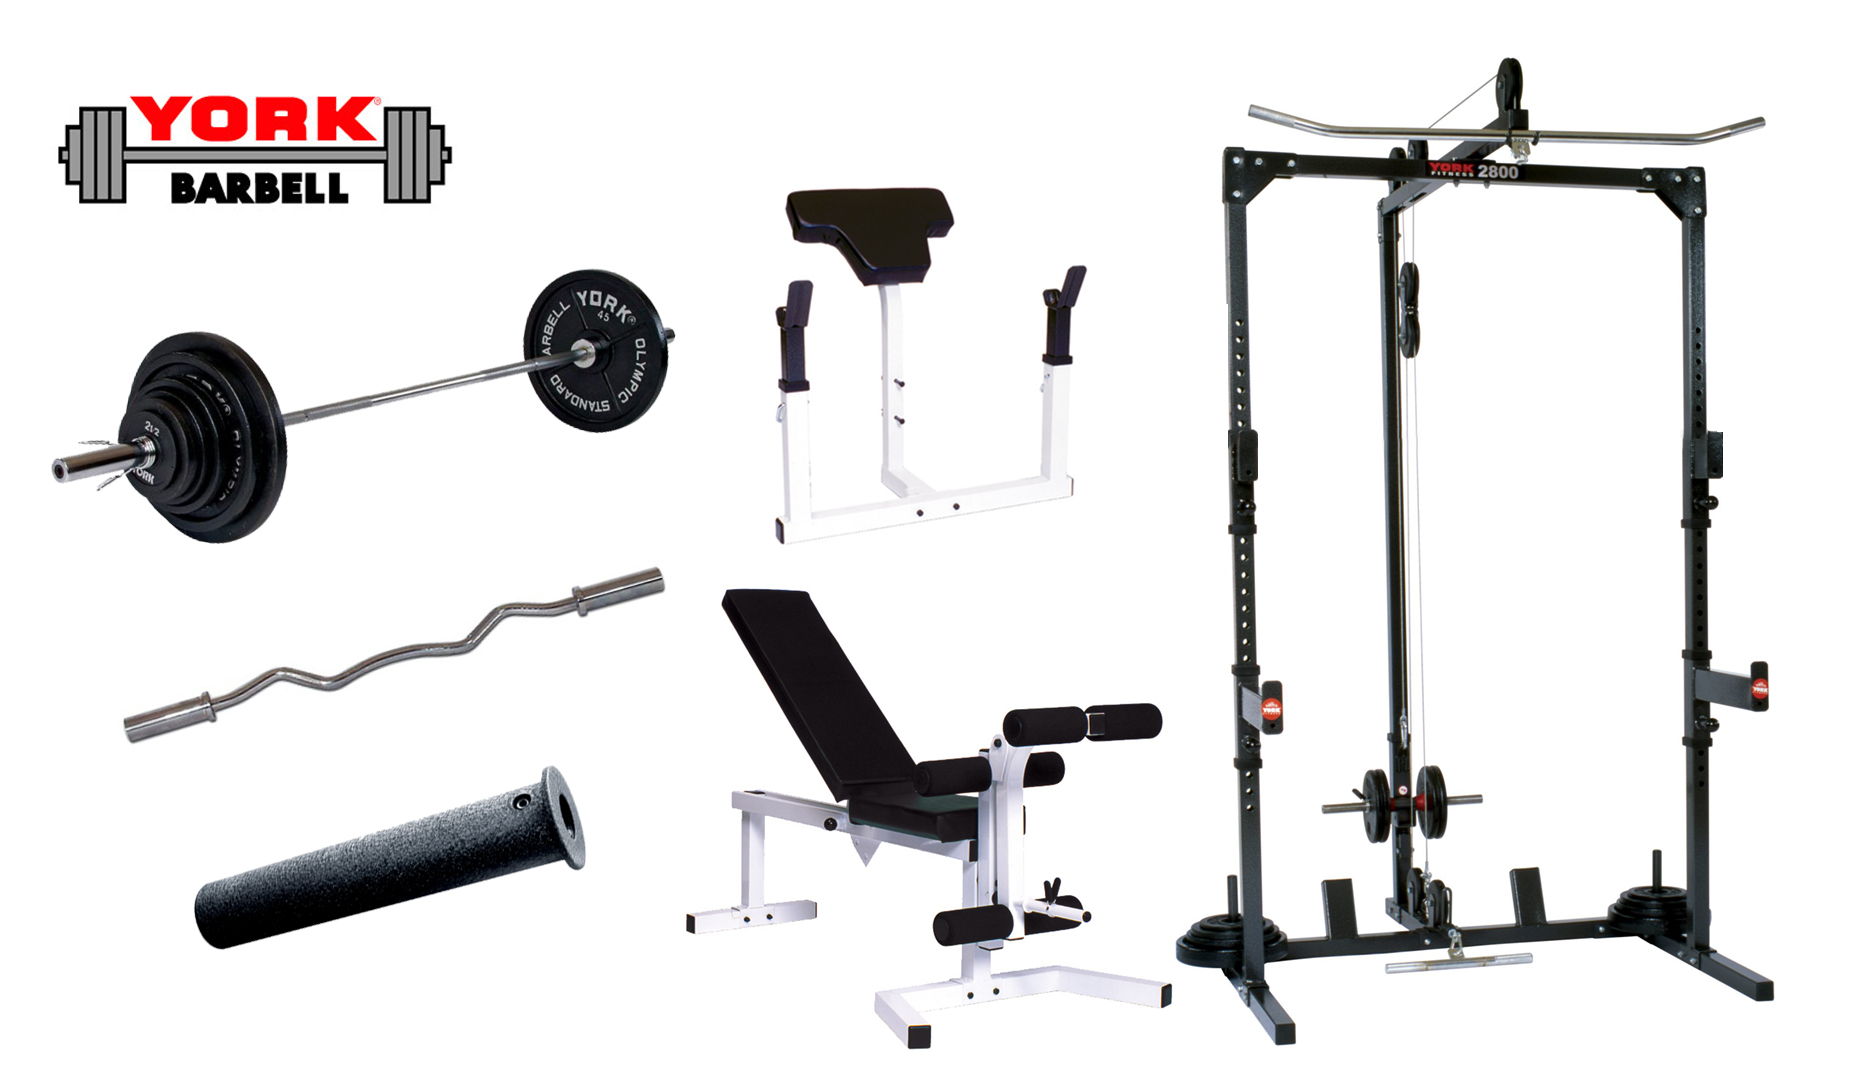 Basic Training Cage With Barbell System York Barbell